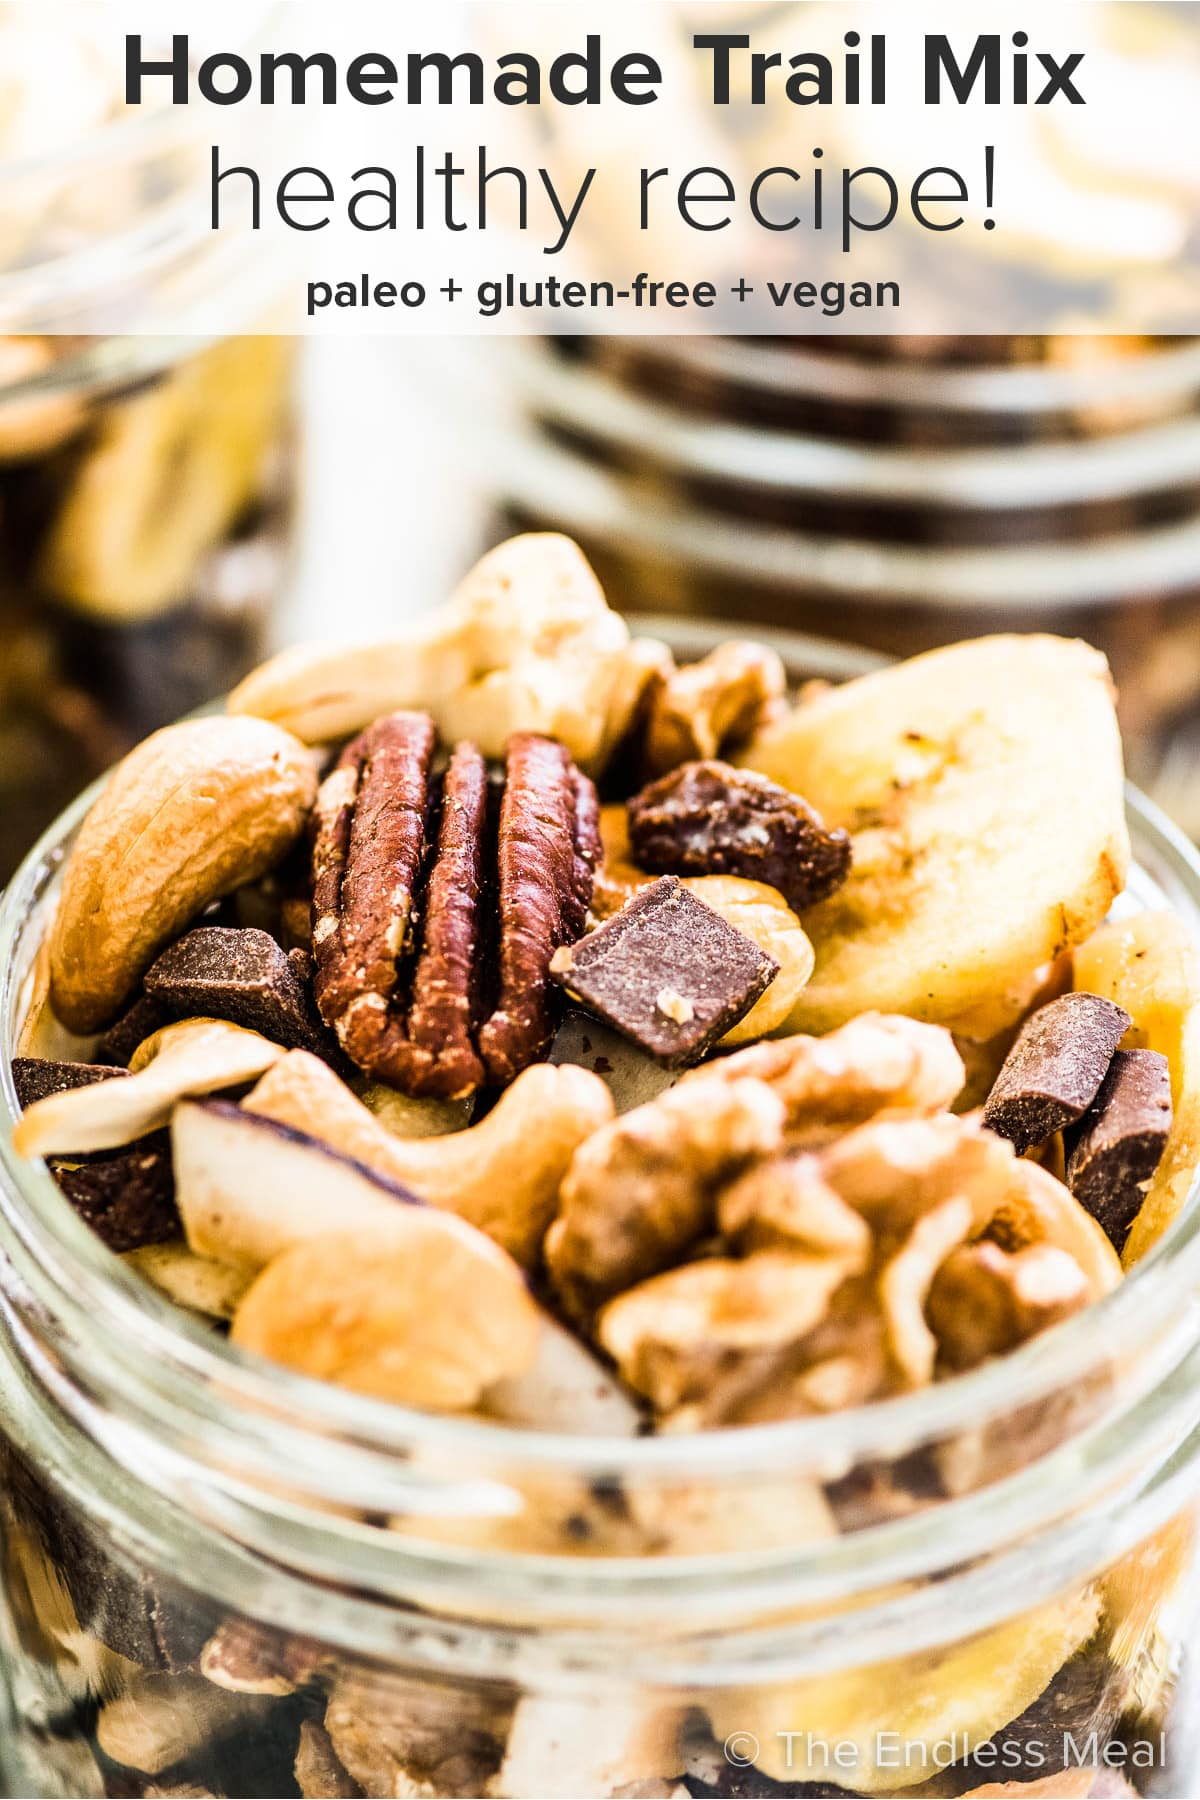 Homemade trail mix with the recipe title on top of the picture.